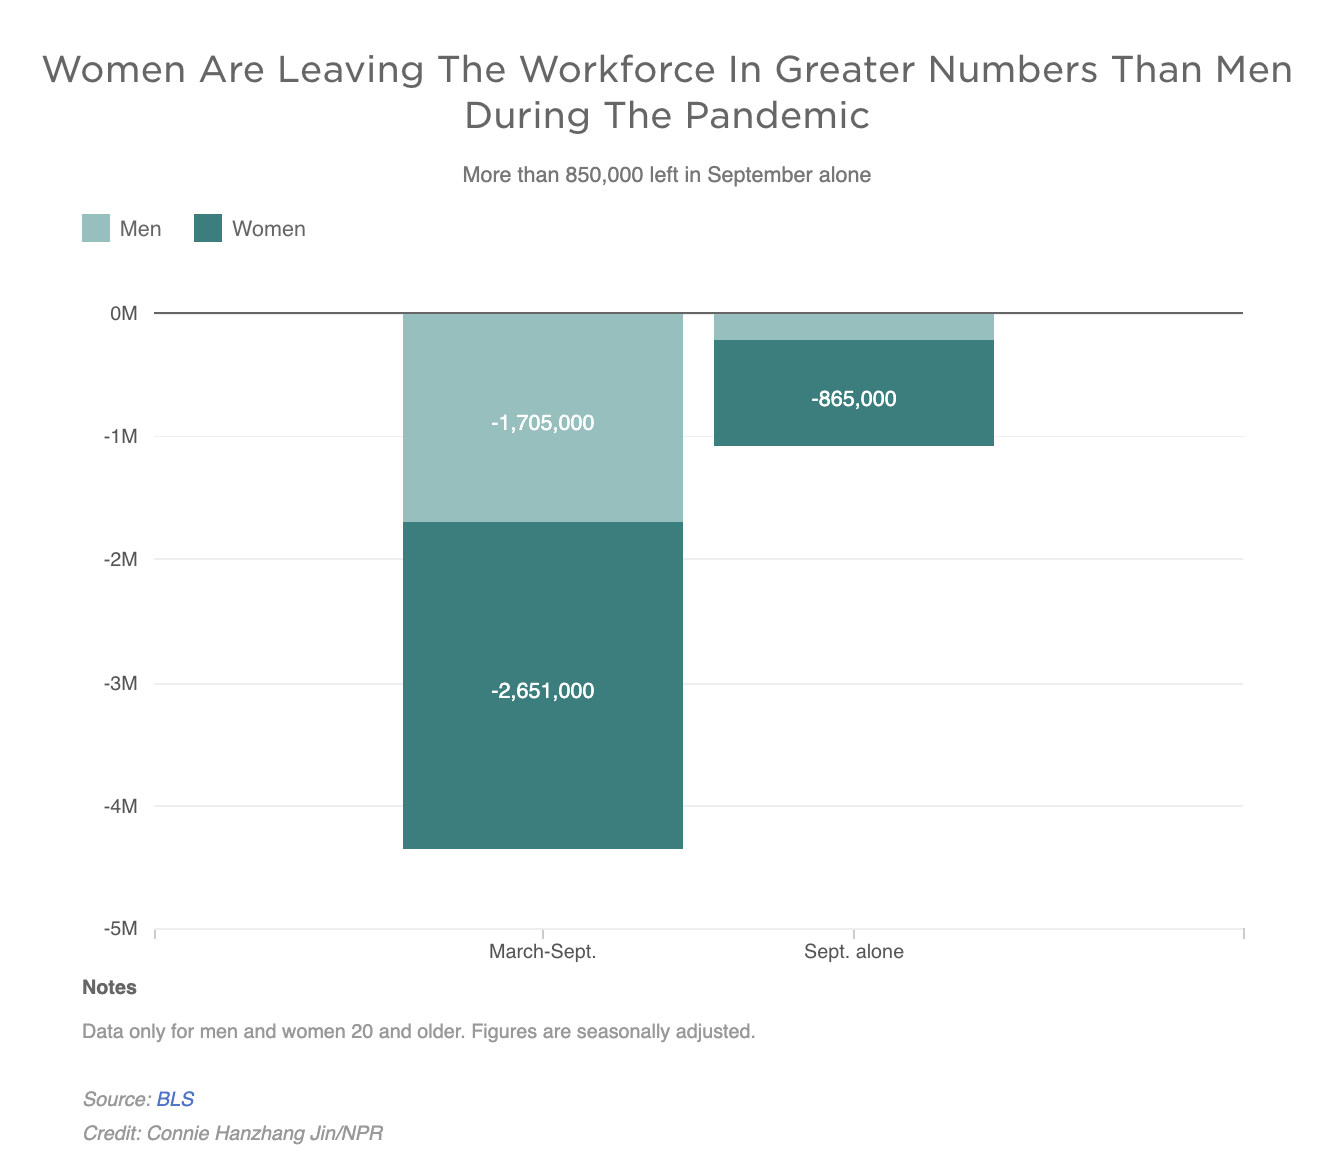 Women Are Leaving The Workforce In Greater Numbers Than Men During The Pandemic